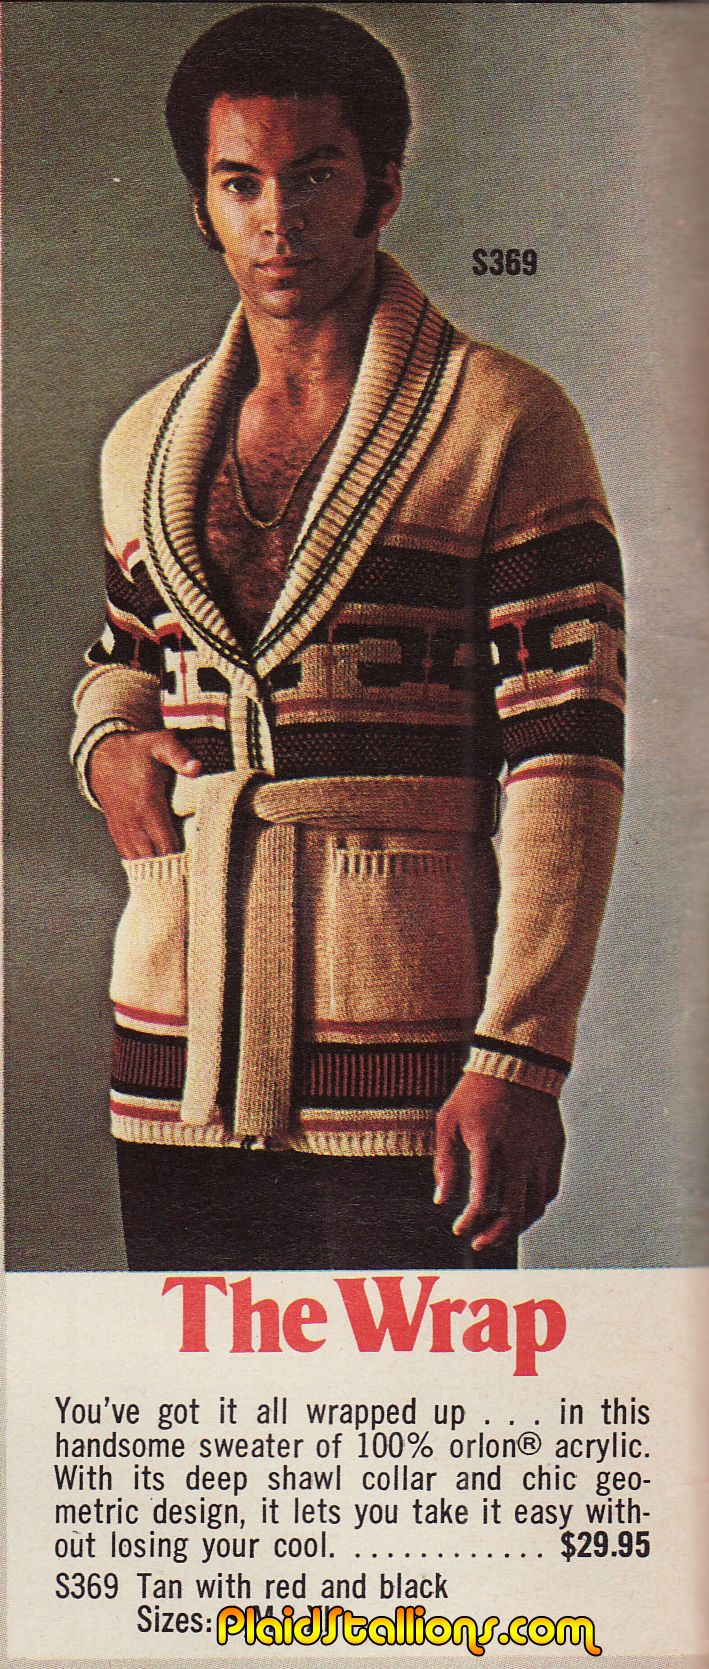 """The sweater suggests """"I have a sensitive side"""" but the shirtlessness boldly states """"but don't expect me to cry or some crap""""."""